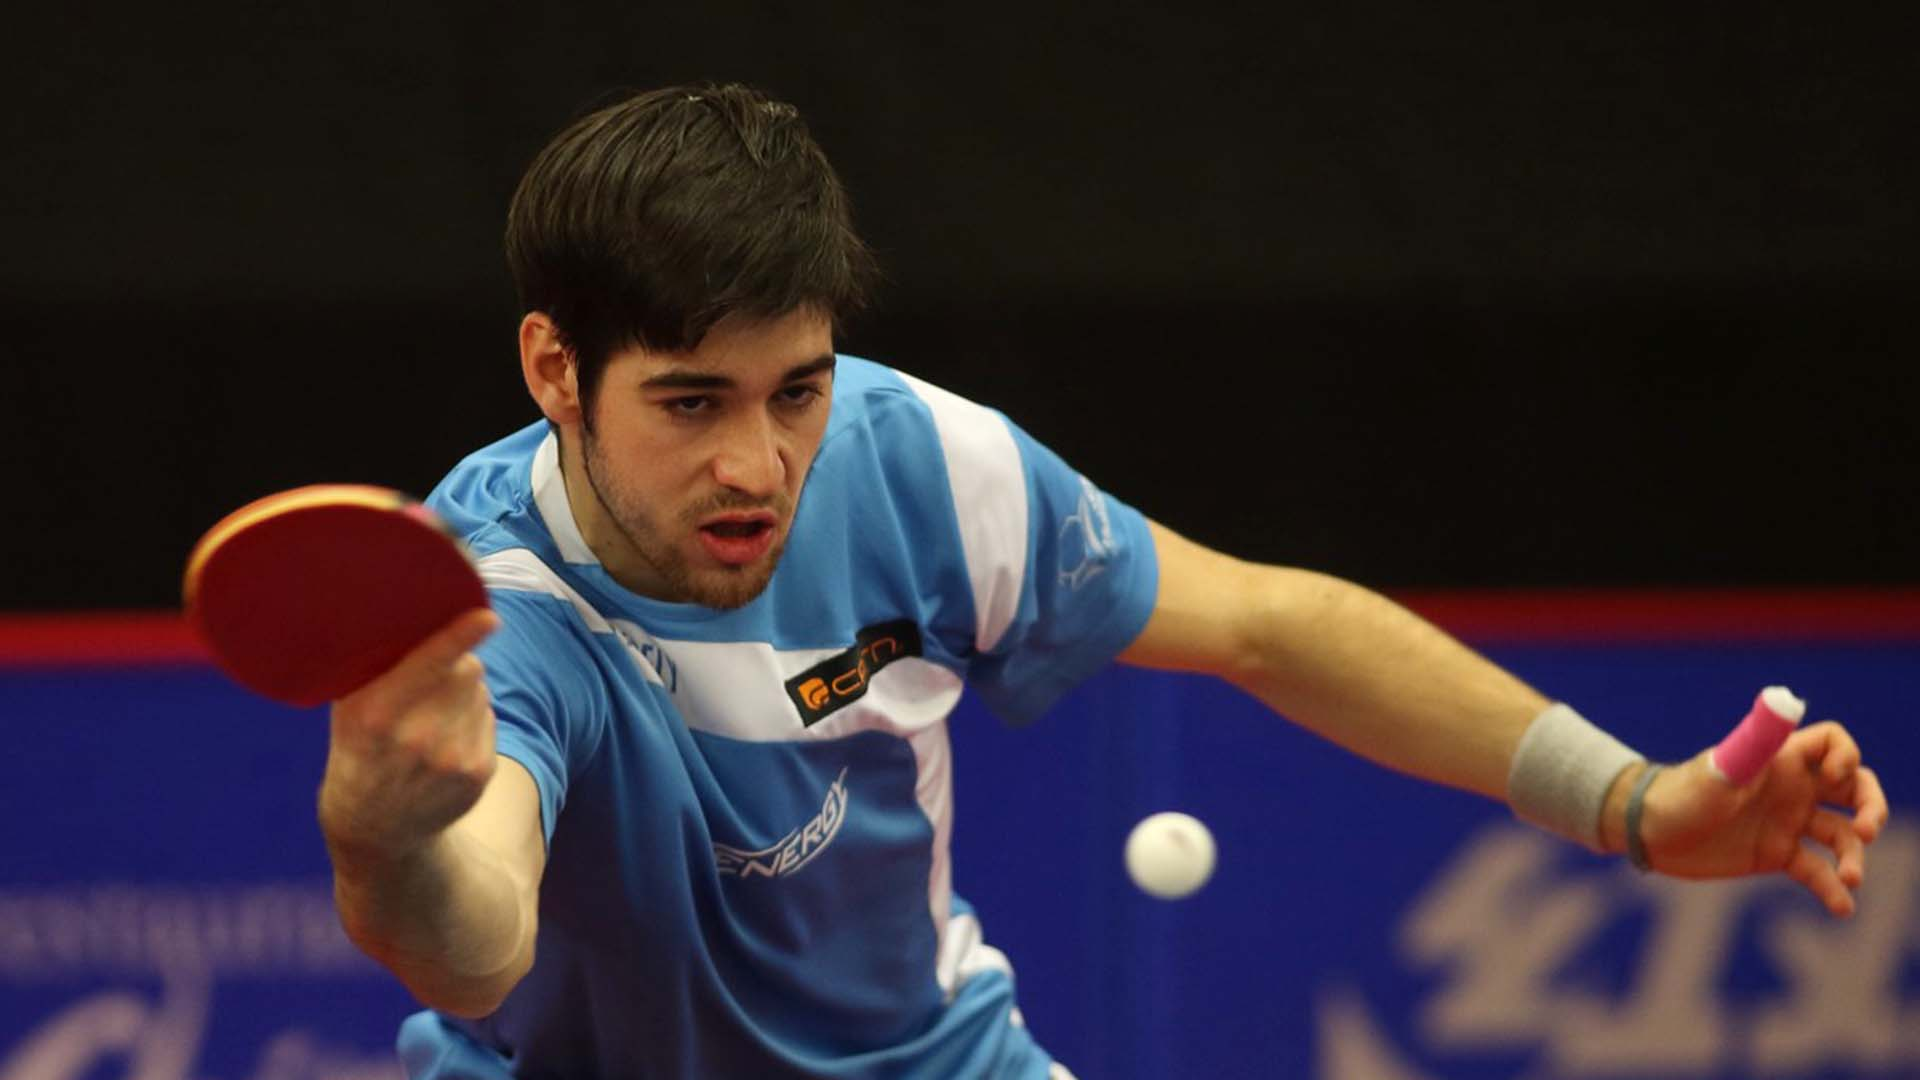 ITTF Nigeria Open: Frenchman Brossier Eager To Contend For Title